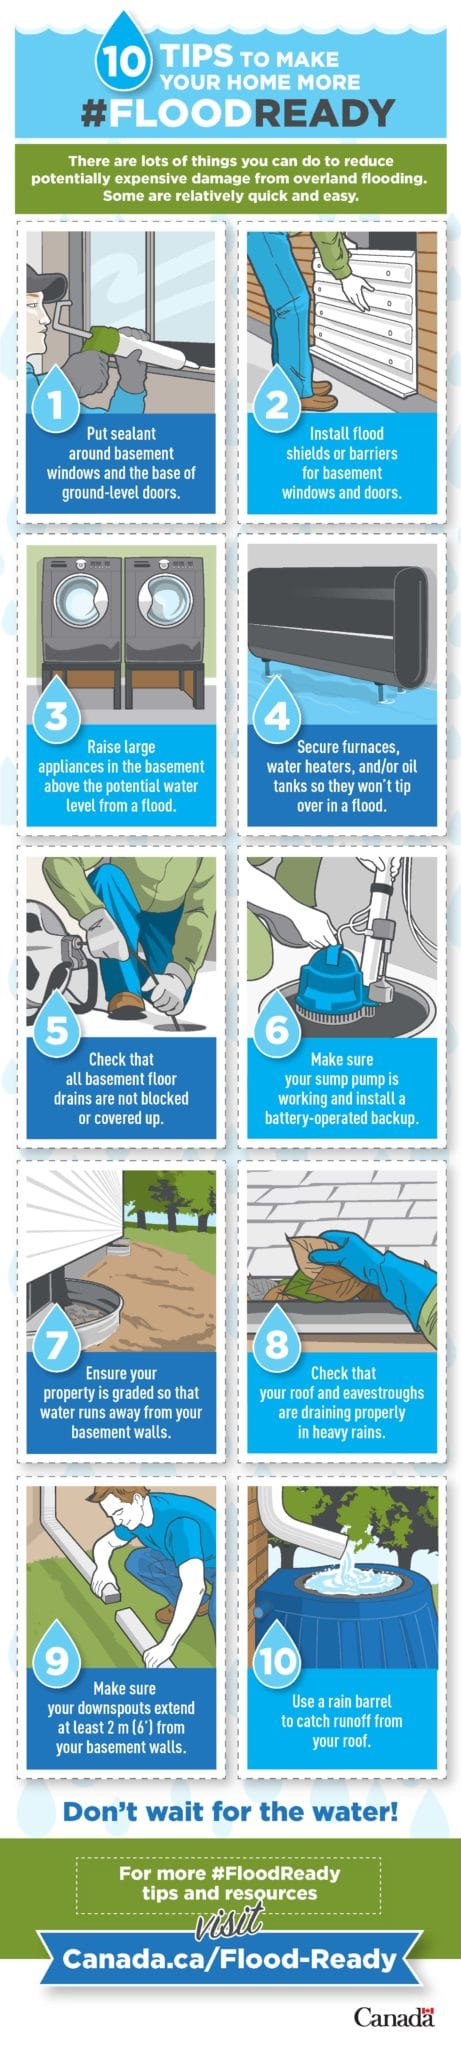 Flood Ready Infographic